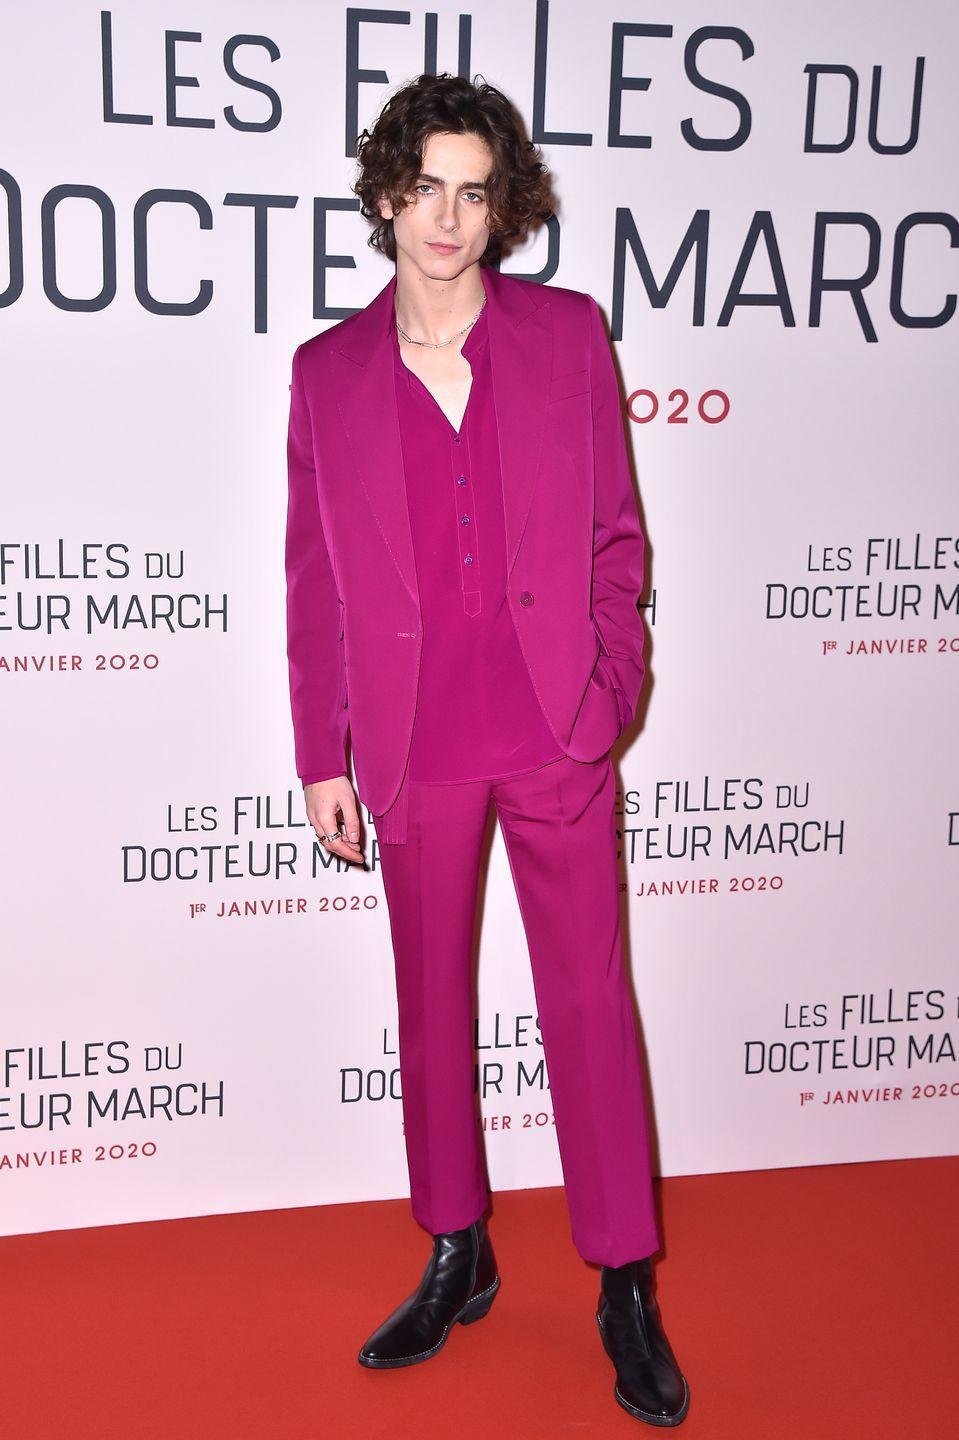 <p>Pink tailoring is becoming less and less of a statement, and more of a welcomed move. Pink is fine now. But it can still shock (in a good way) when the shades get fluoro, and when the fit gets Stella McCartney.</p>